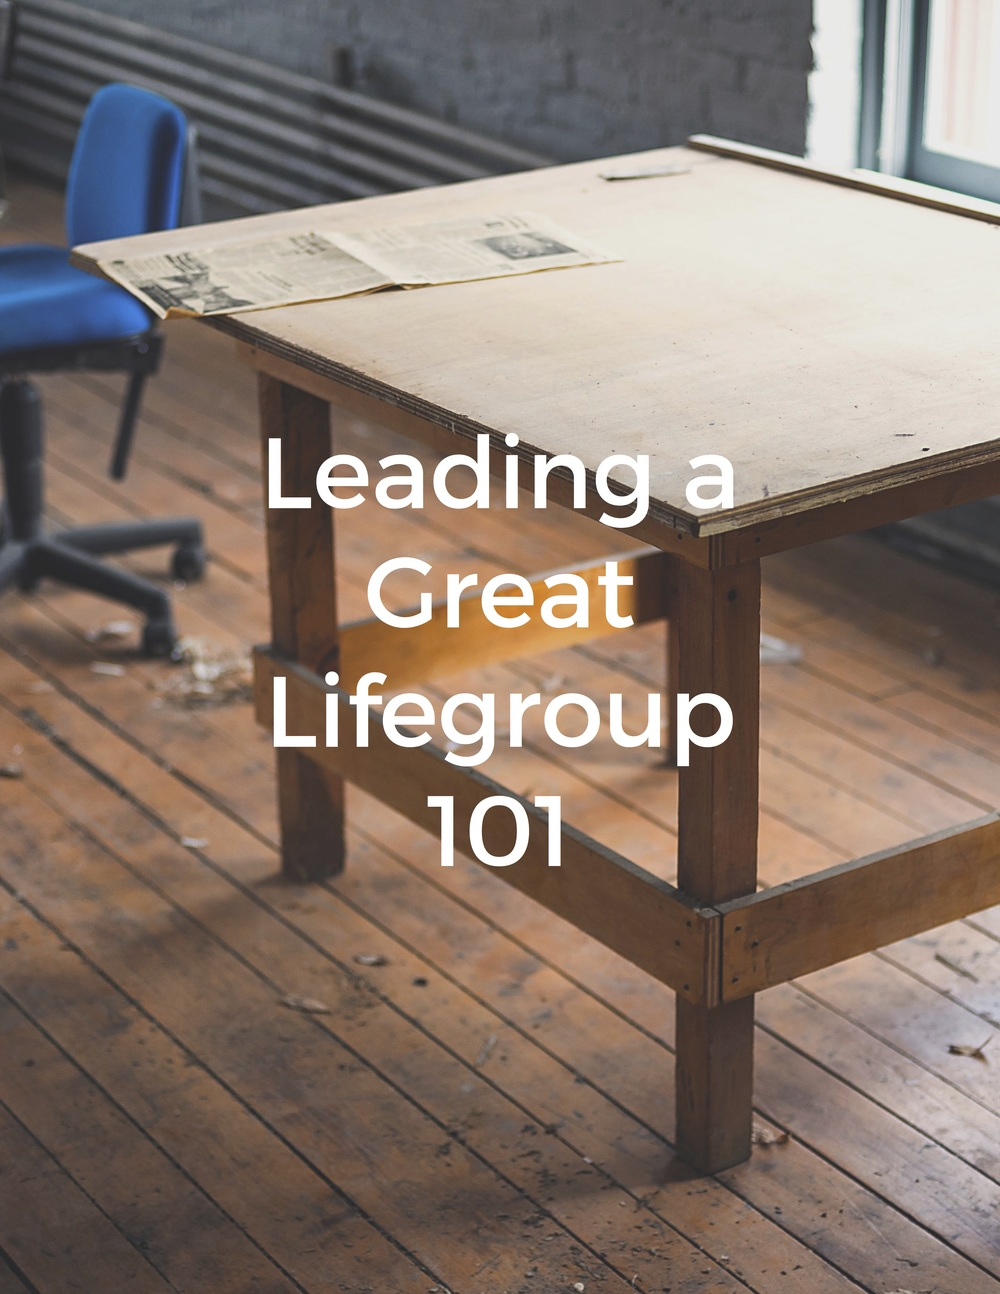 Leading a Great Lifegroup 101 cover.jpg